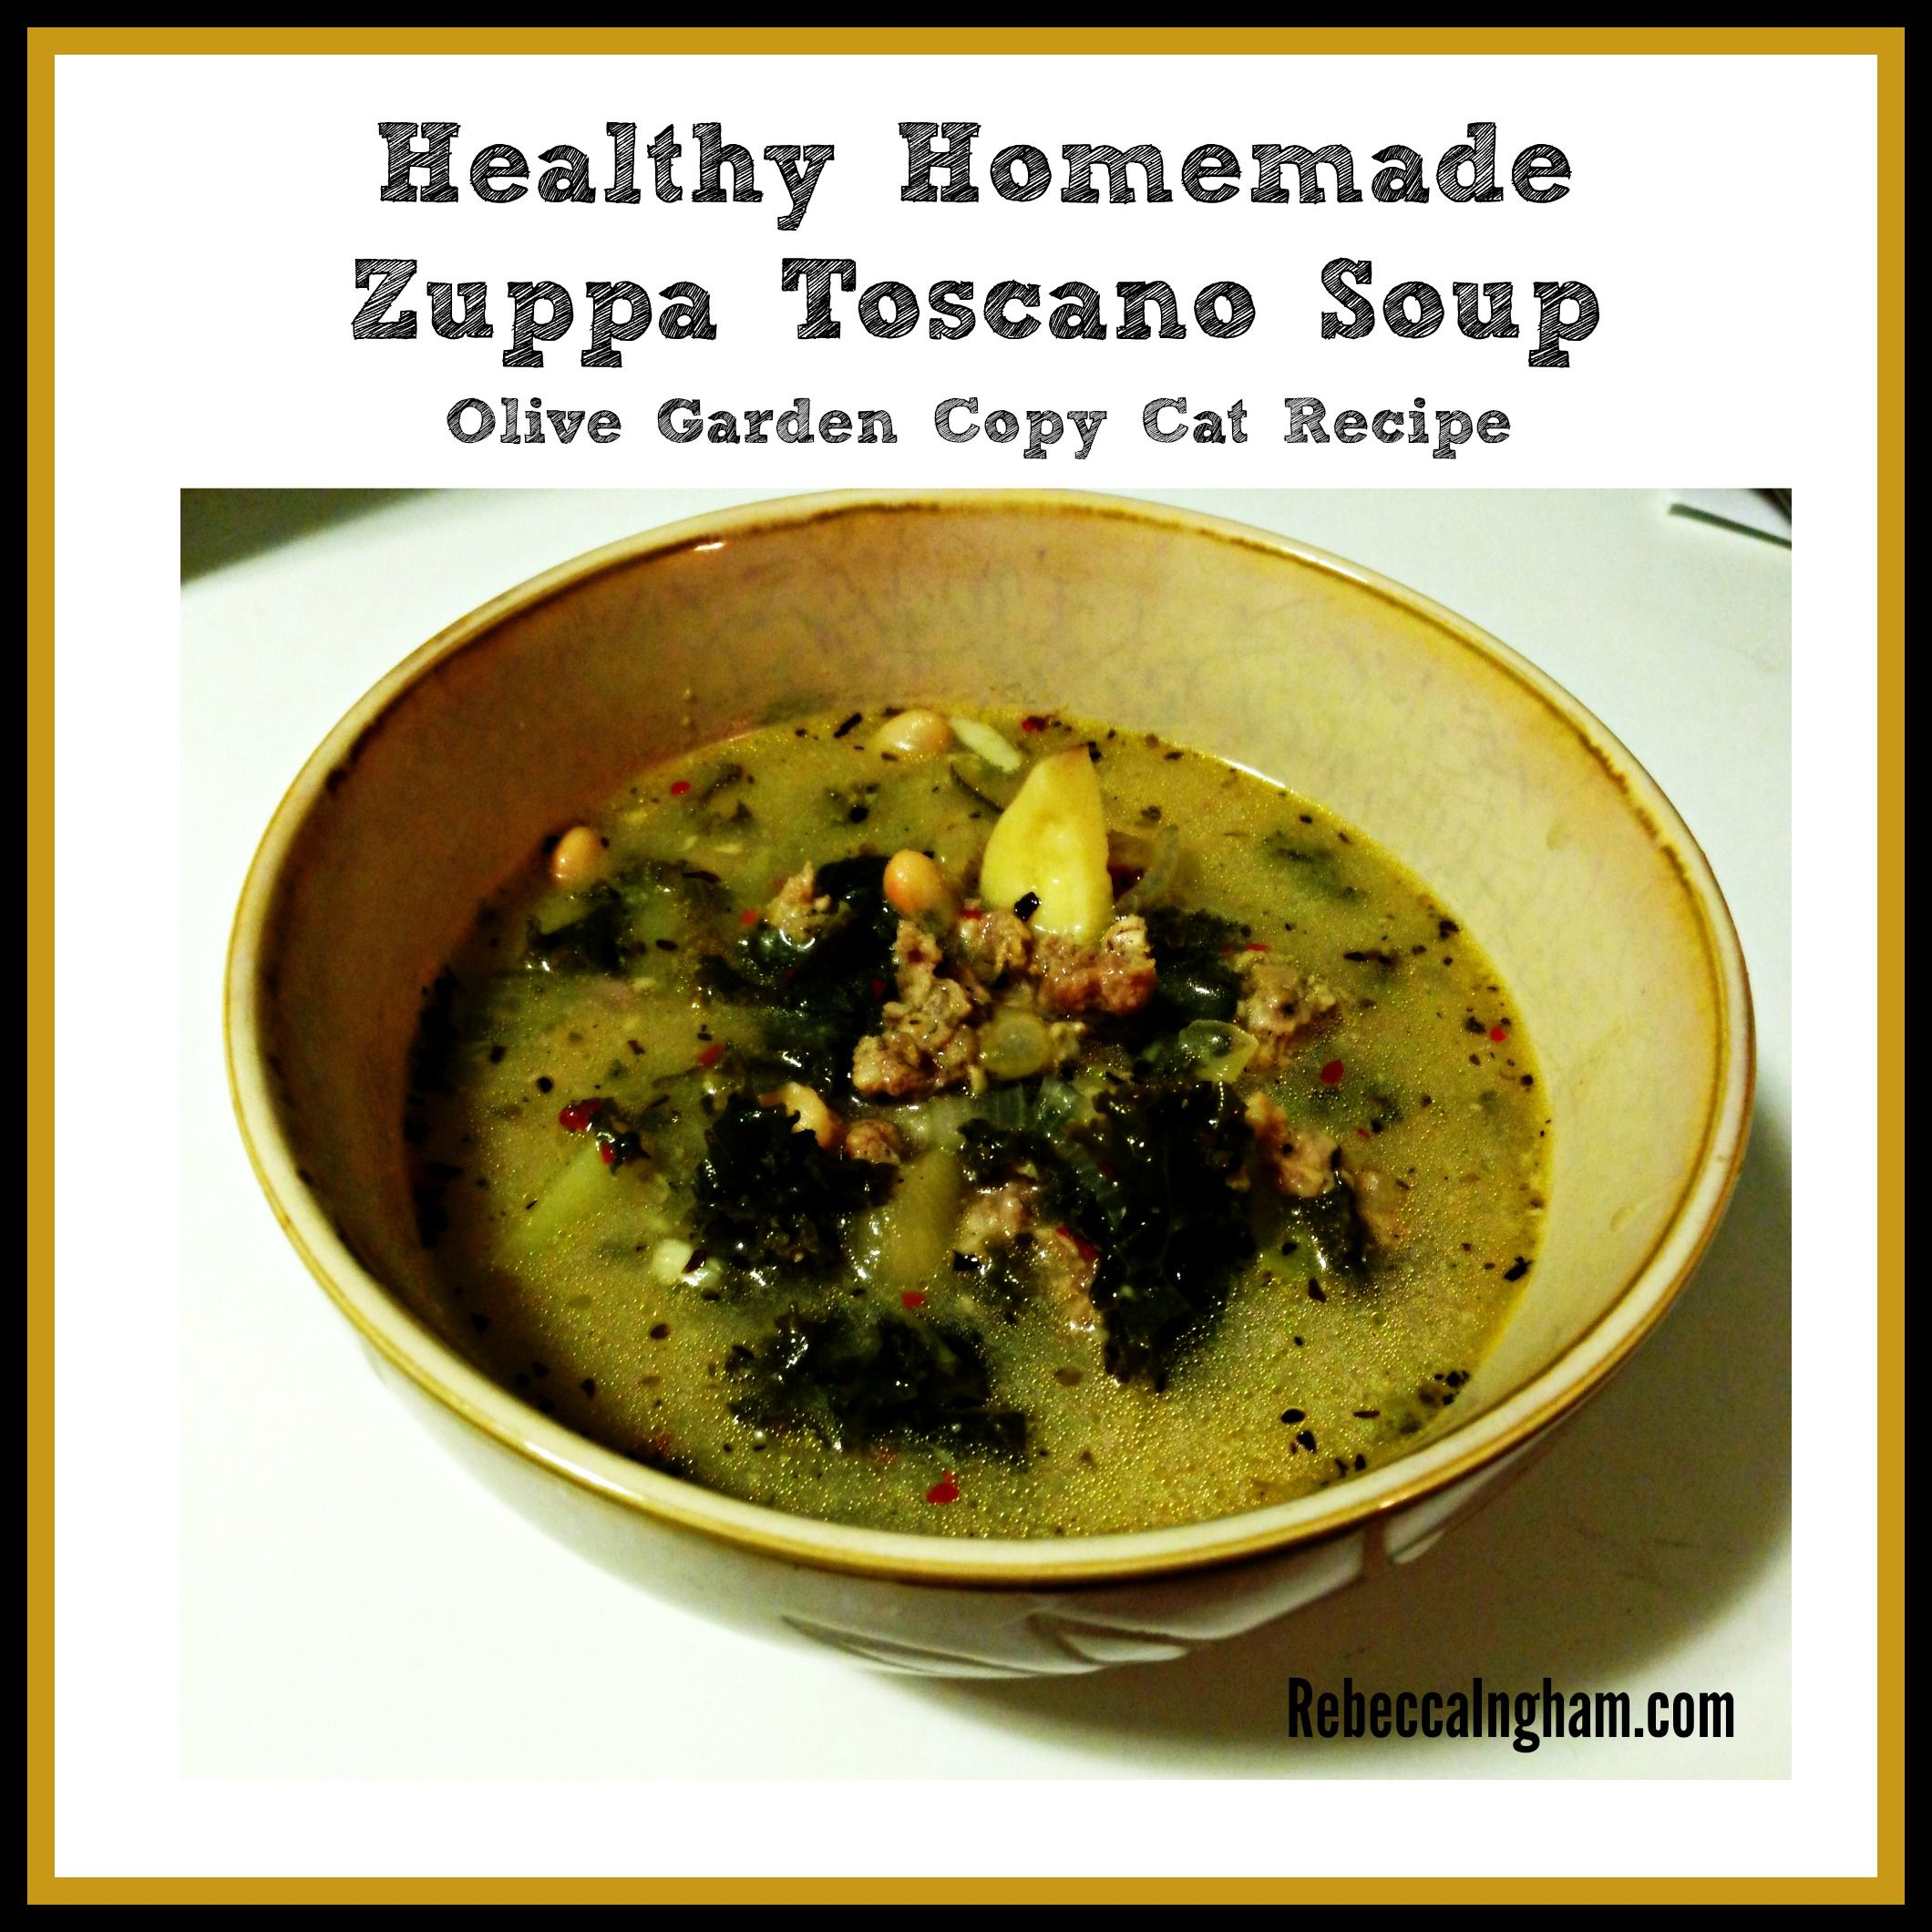 Healthy Homemade Zuppa Toscano Soup (Olive Garden Copy Cat